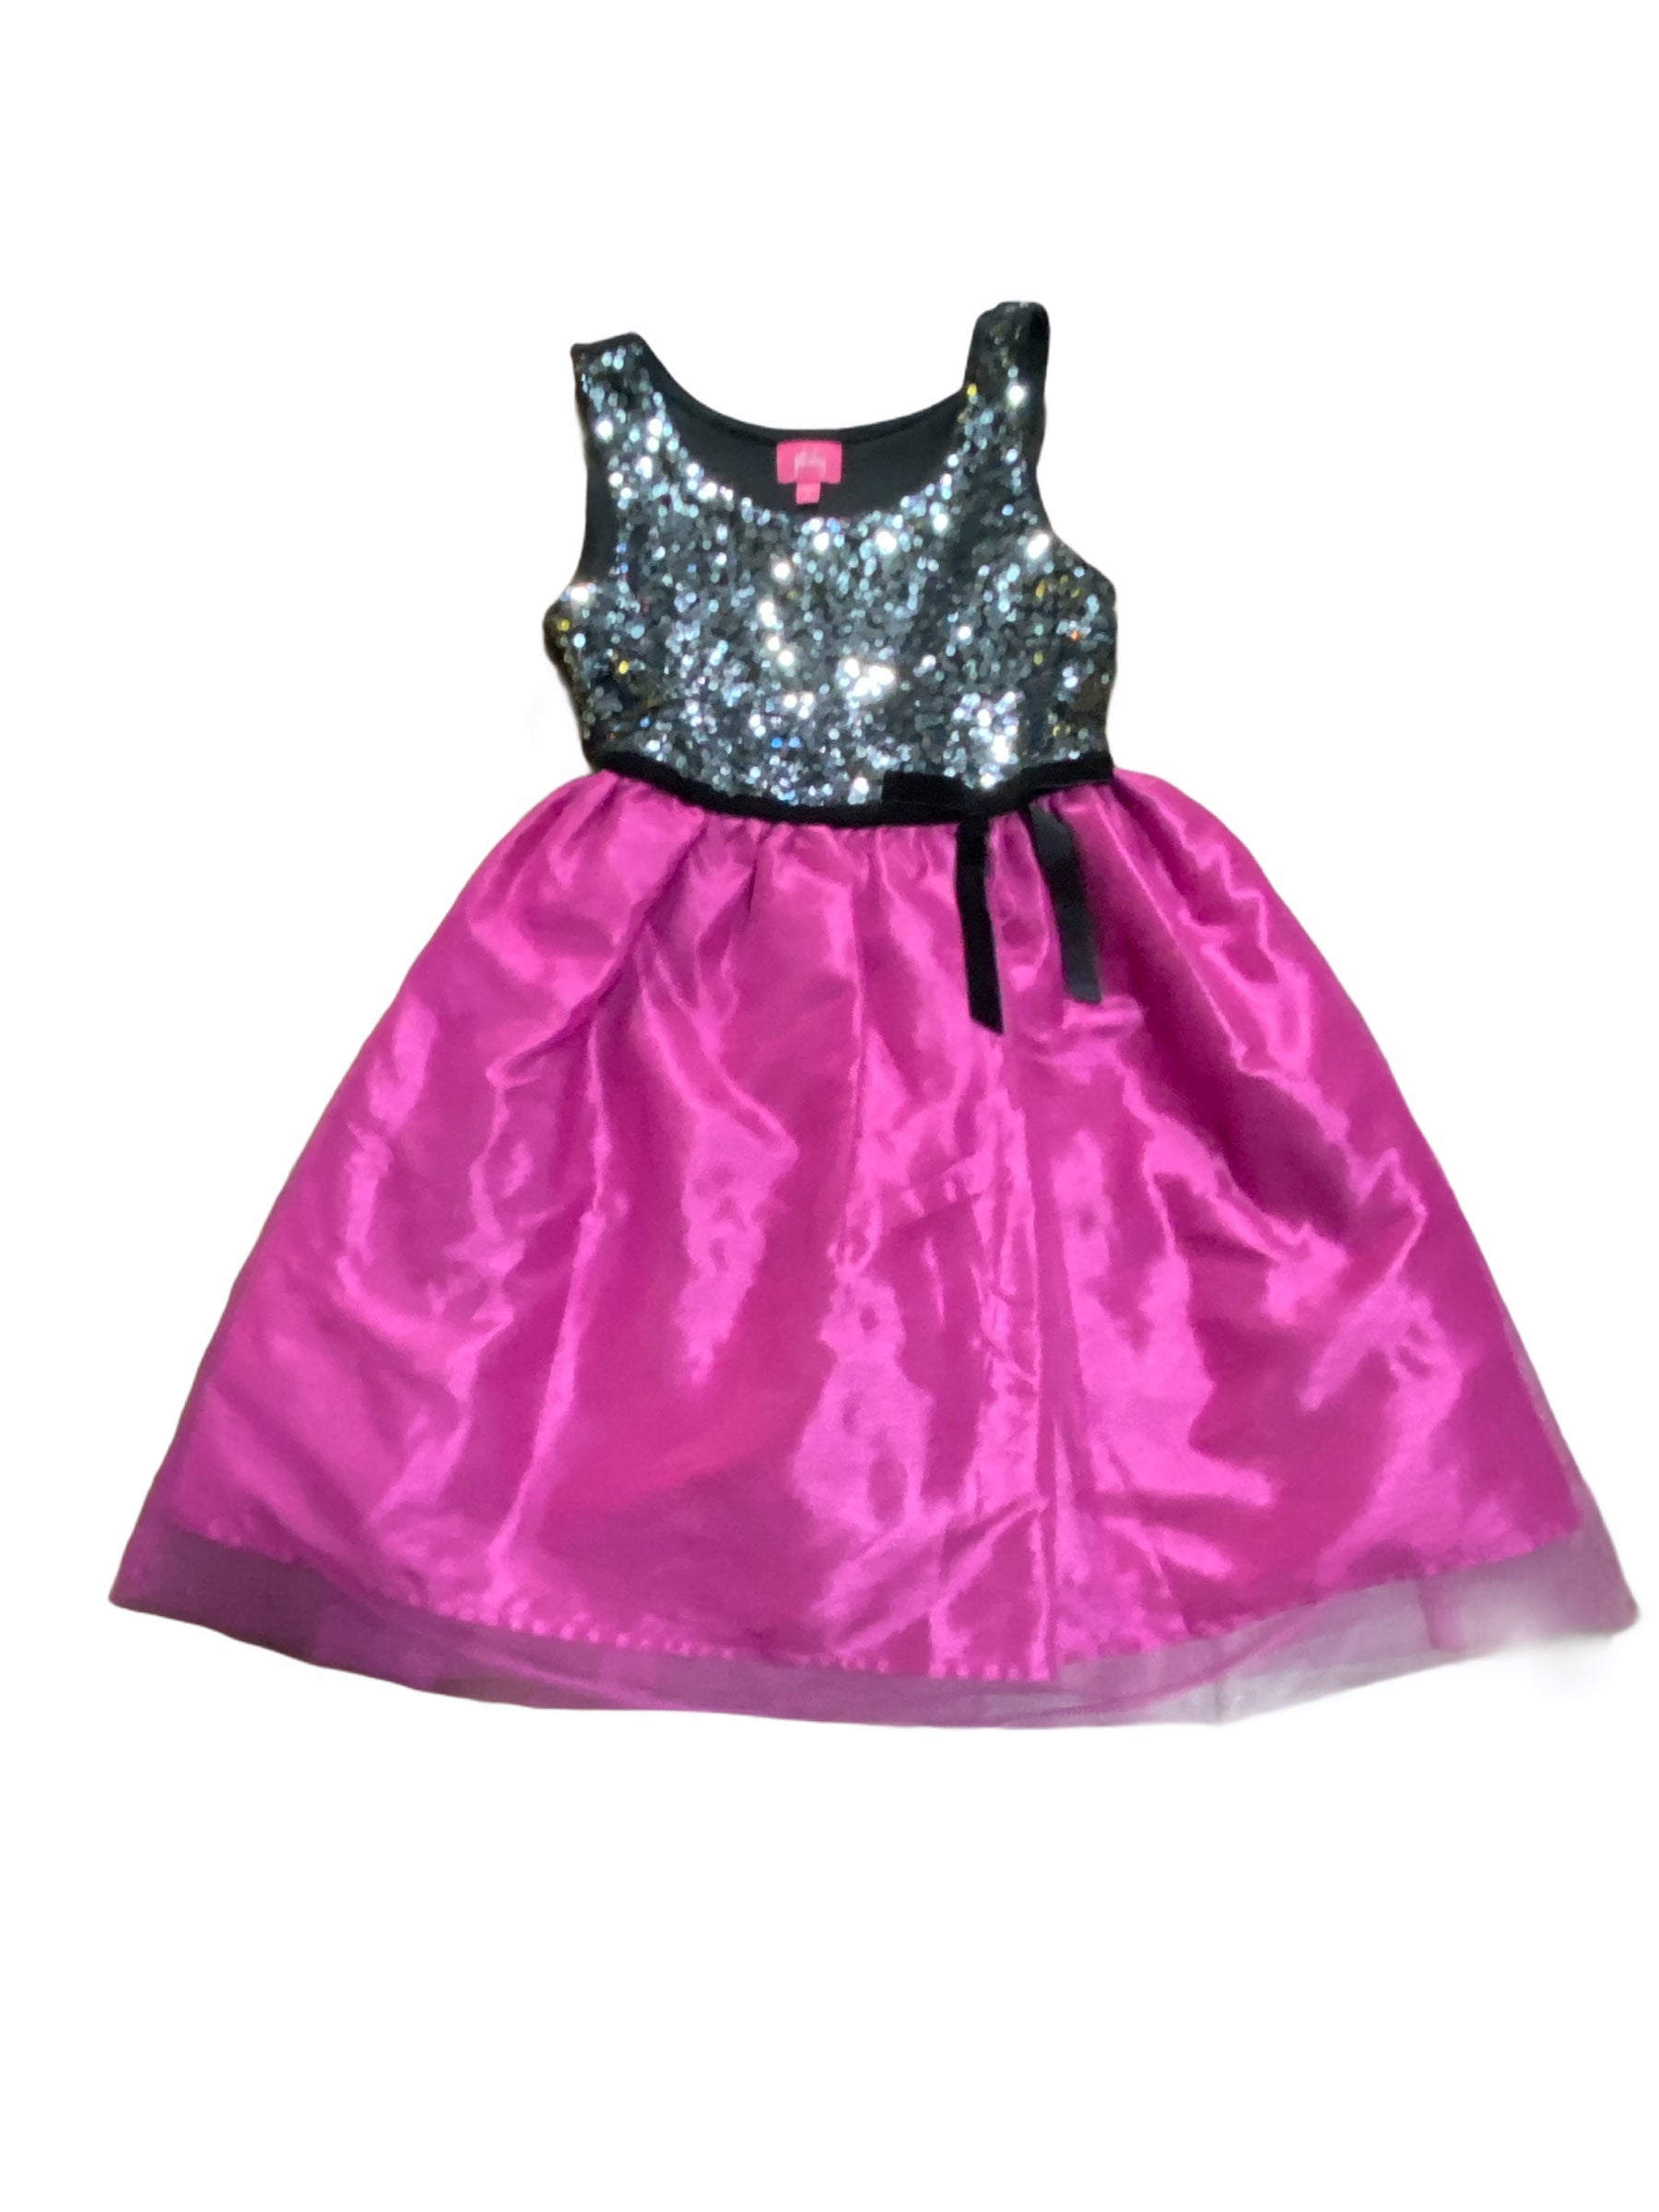 Pinky Pink Tulle & Sequin Dress (10 Girls)